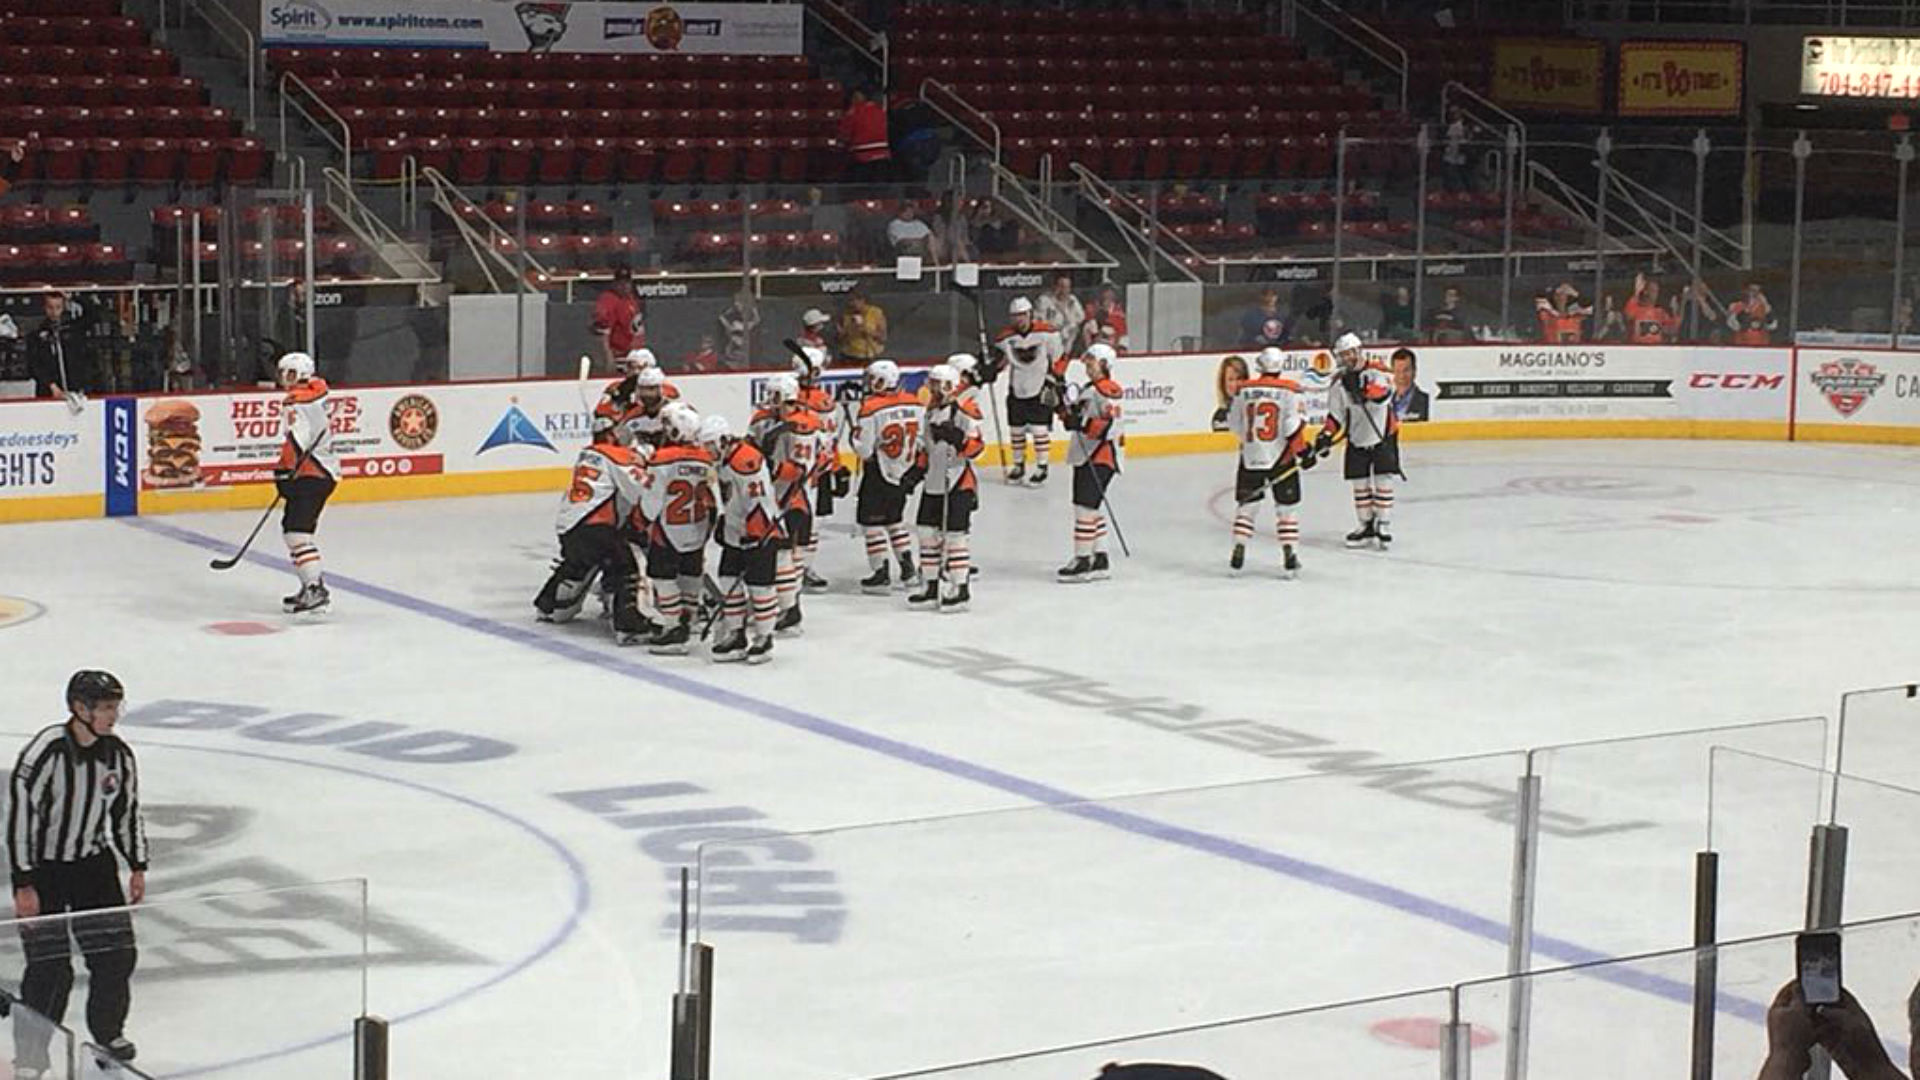 The Lehigh Valley Phantoms have won the longest game in AHL history